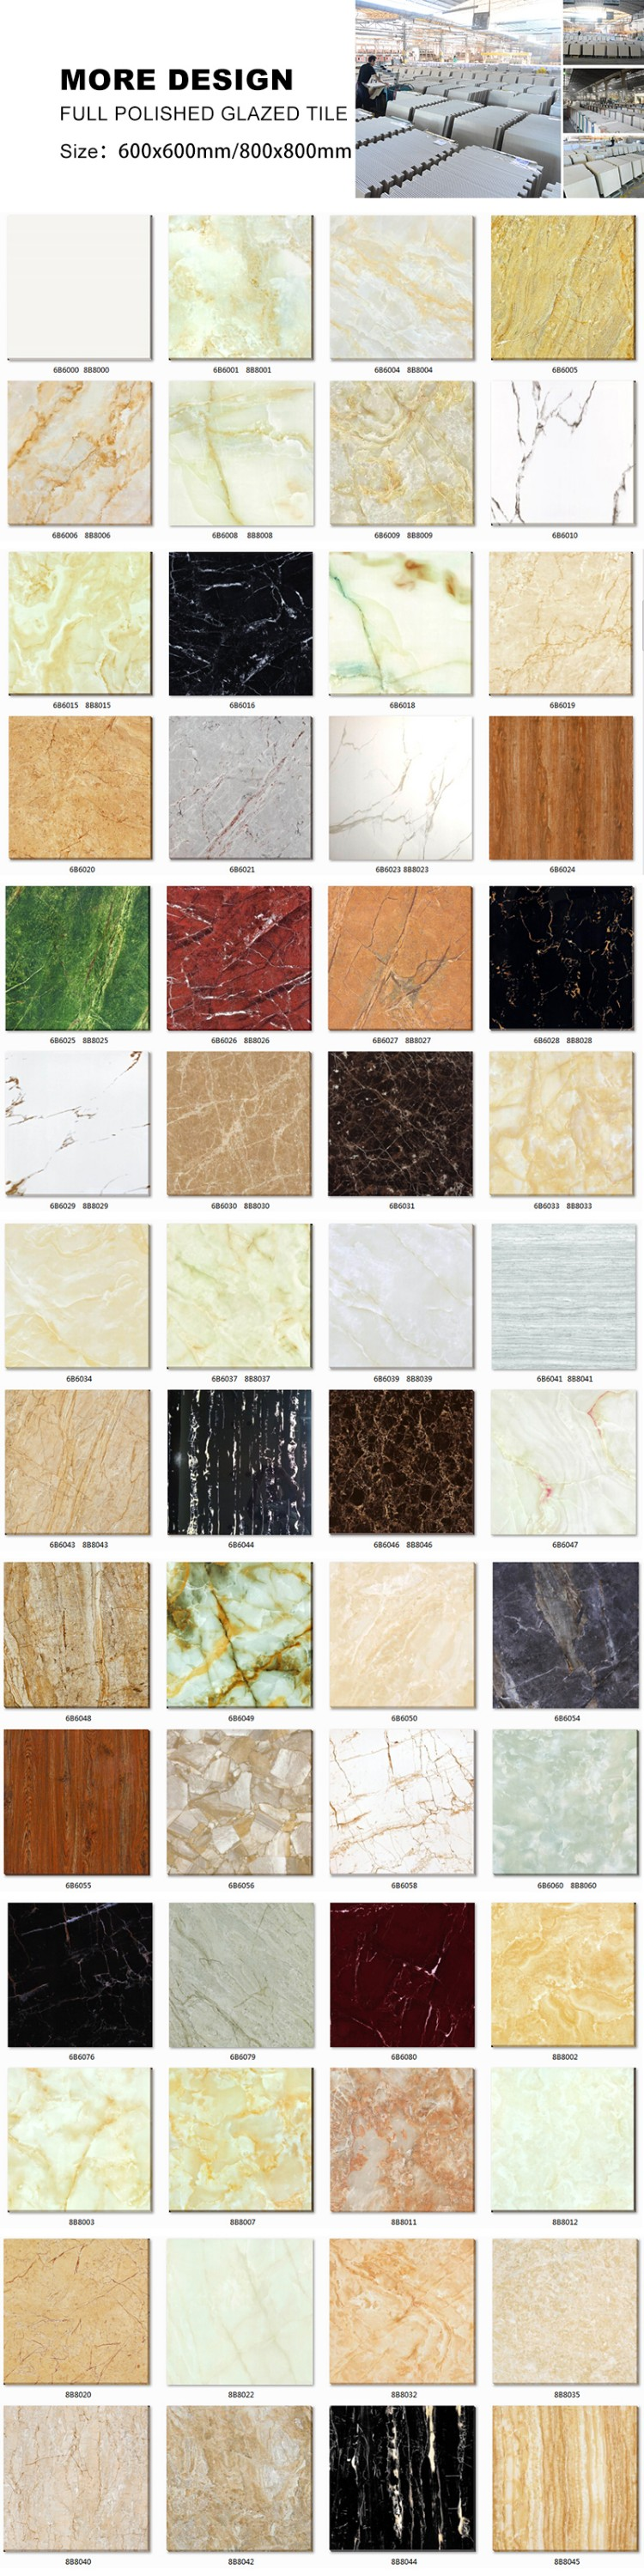 Bulk buy from china building materials 3d picture kerala bathroom bulk buy from china building materials 3d picture kerala bathroom floor tile price in pakistan dailygadgetfo Choice Image